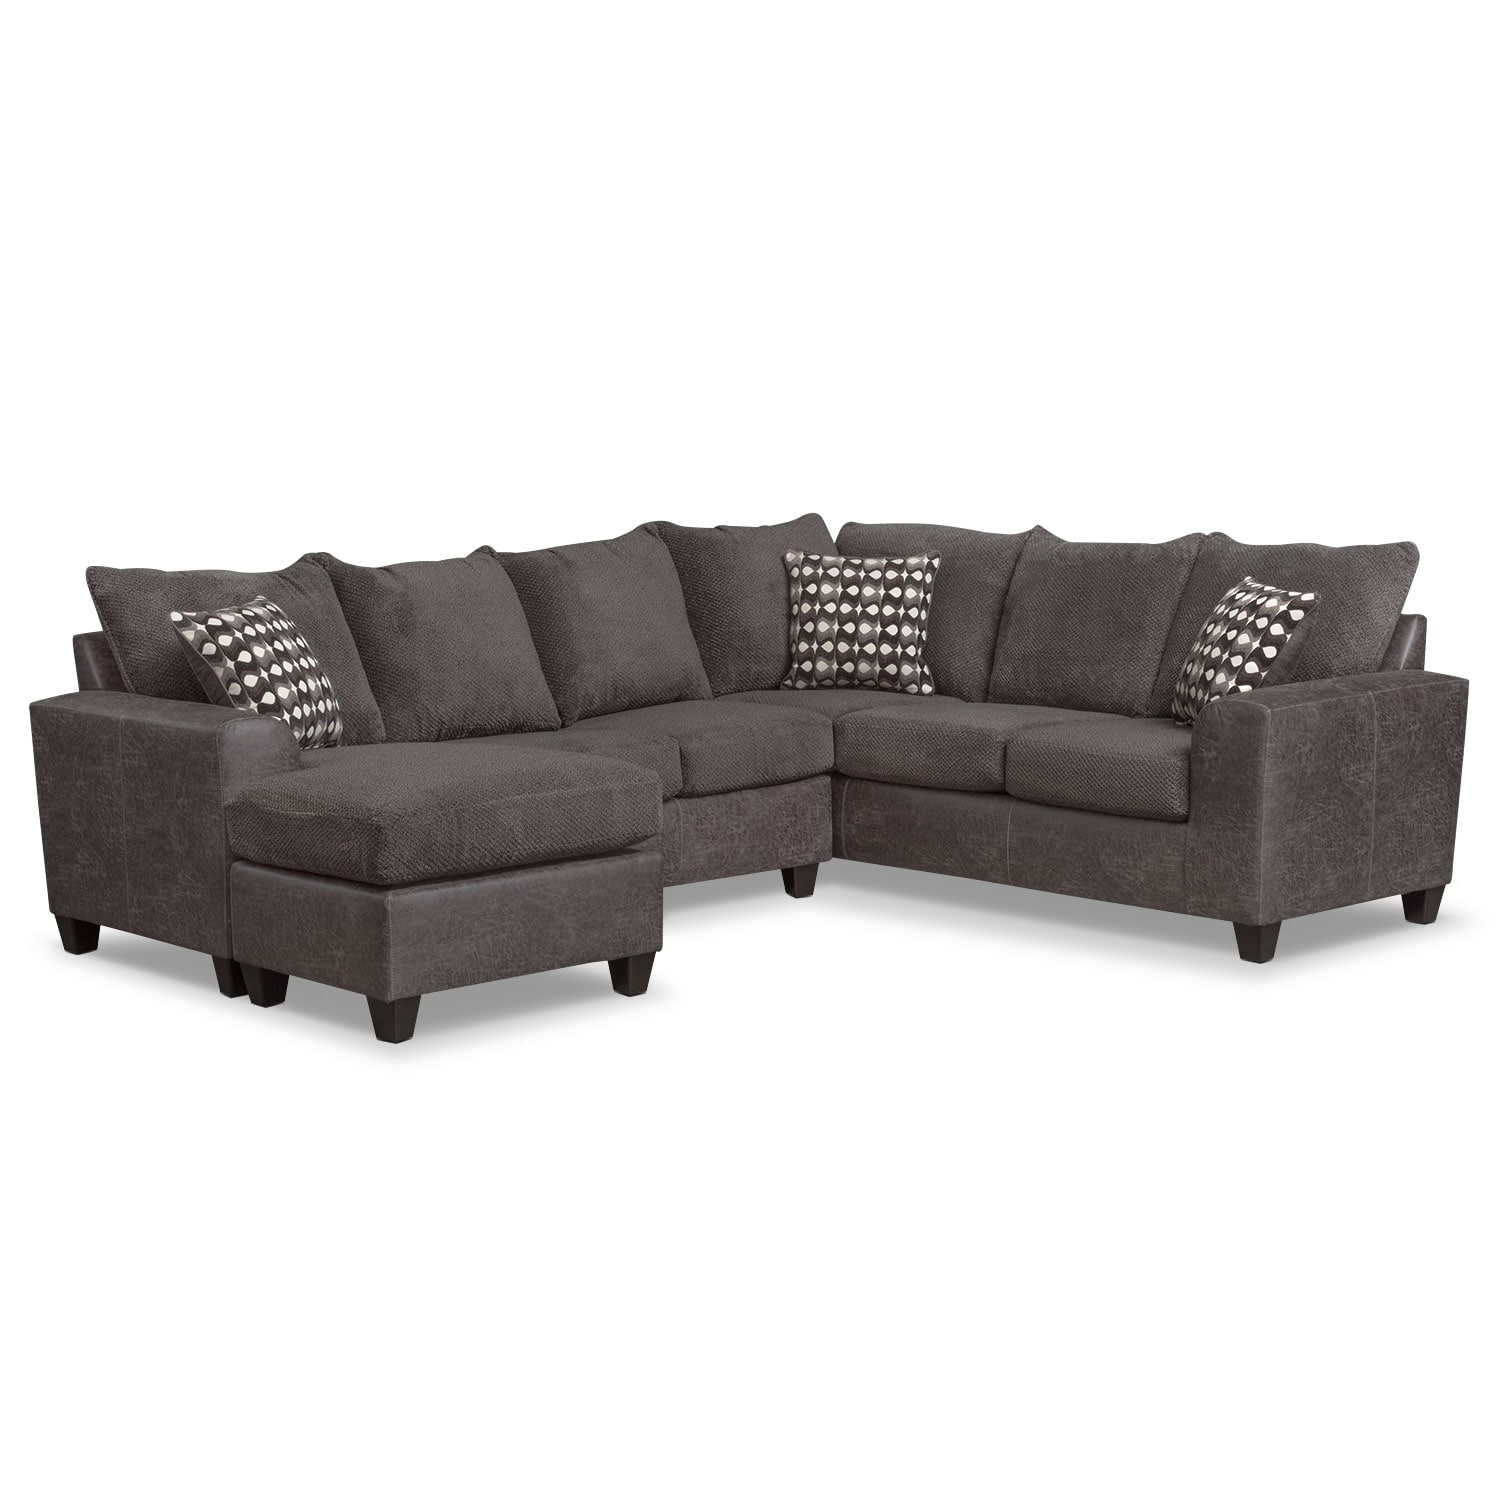 Wonderful American Signature Furniture Sectionals #2: Brando 3-Piece Sectional With Modular Chaise - Smoke